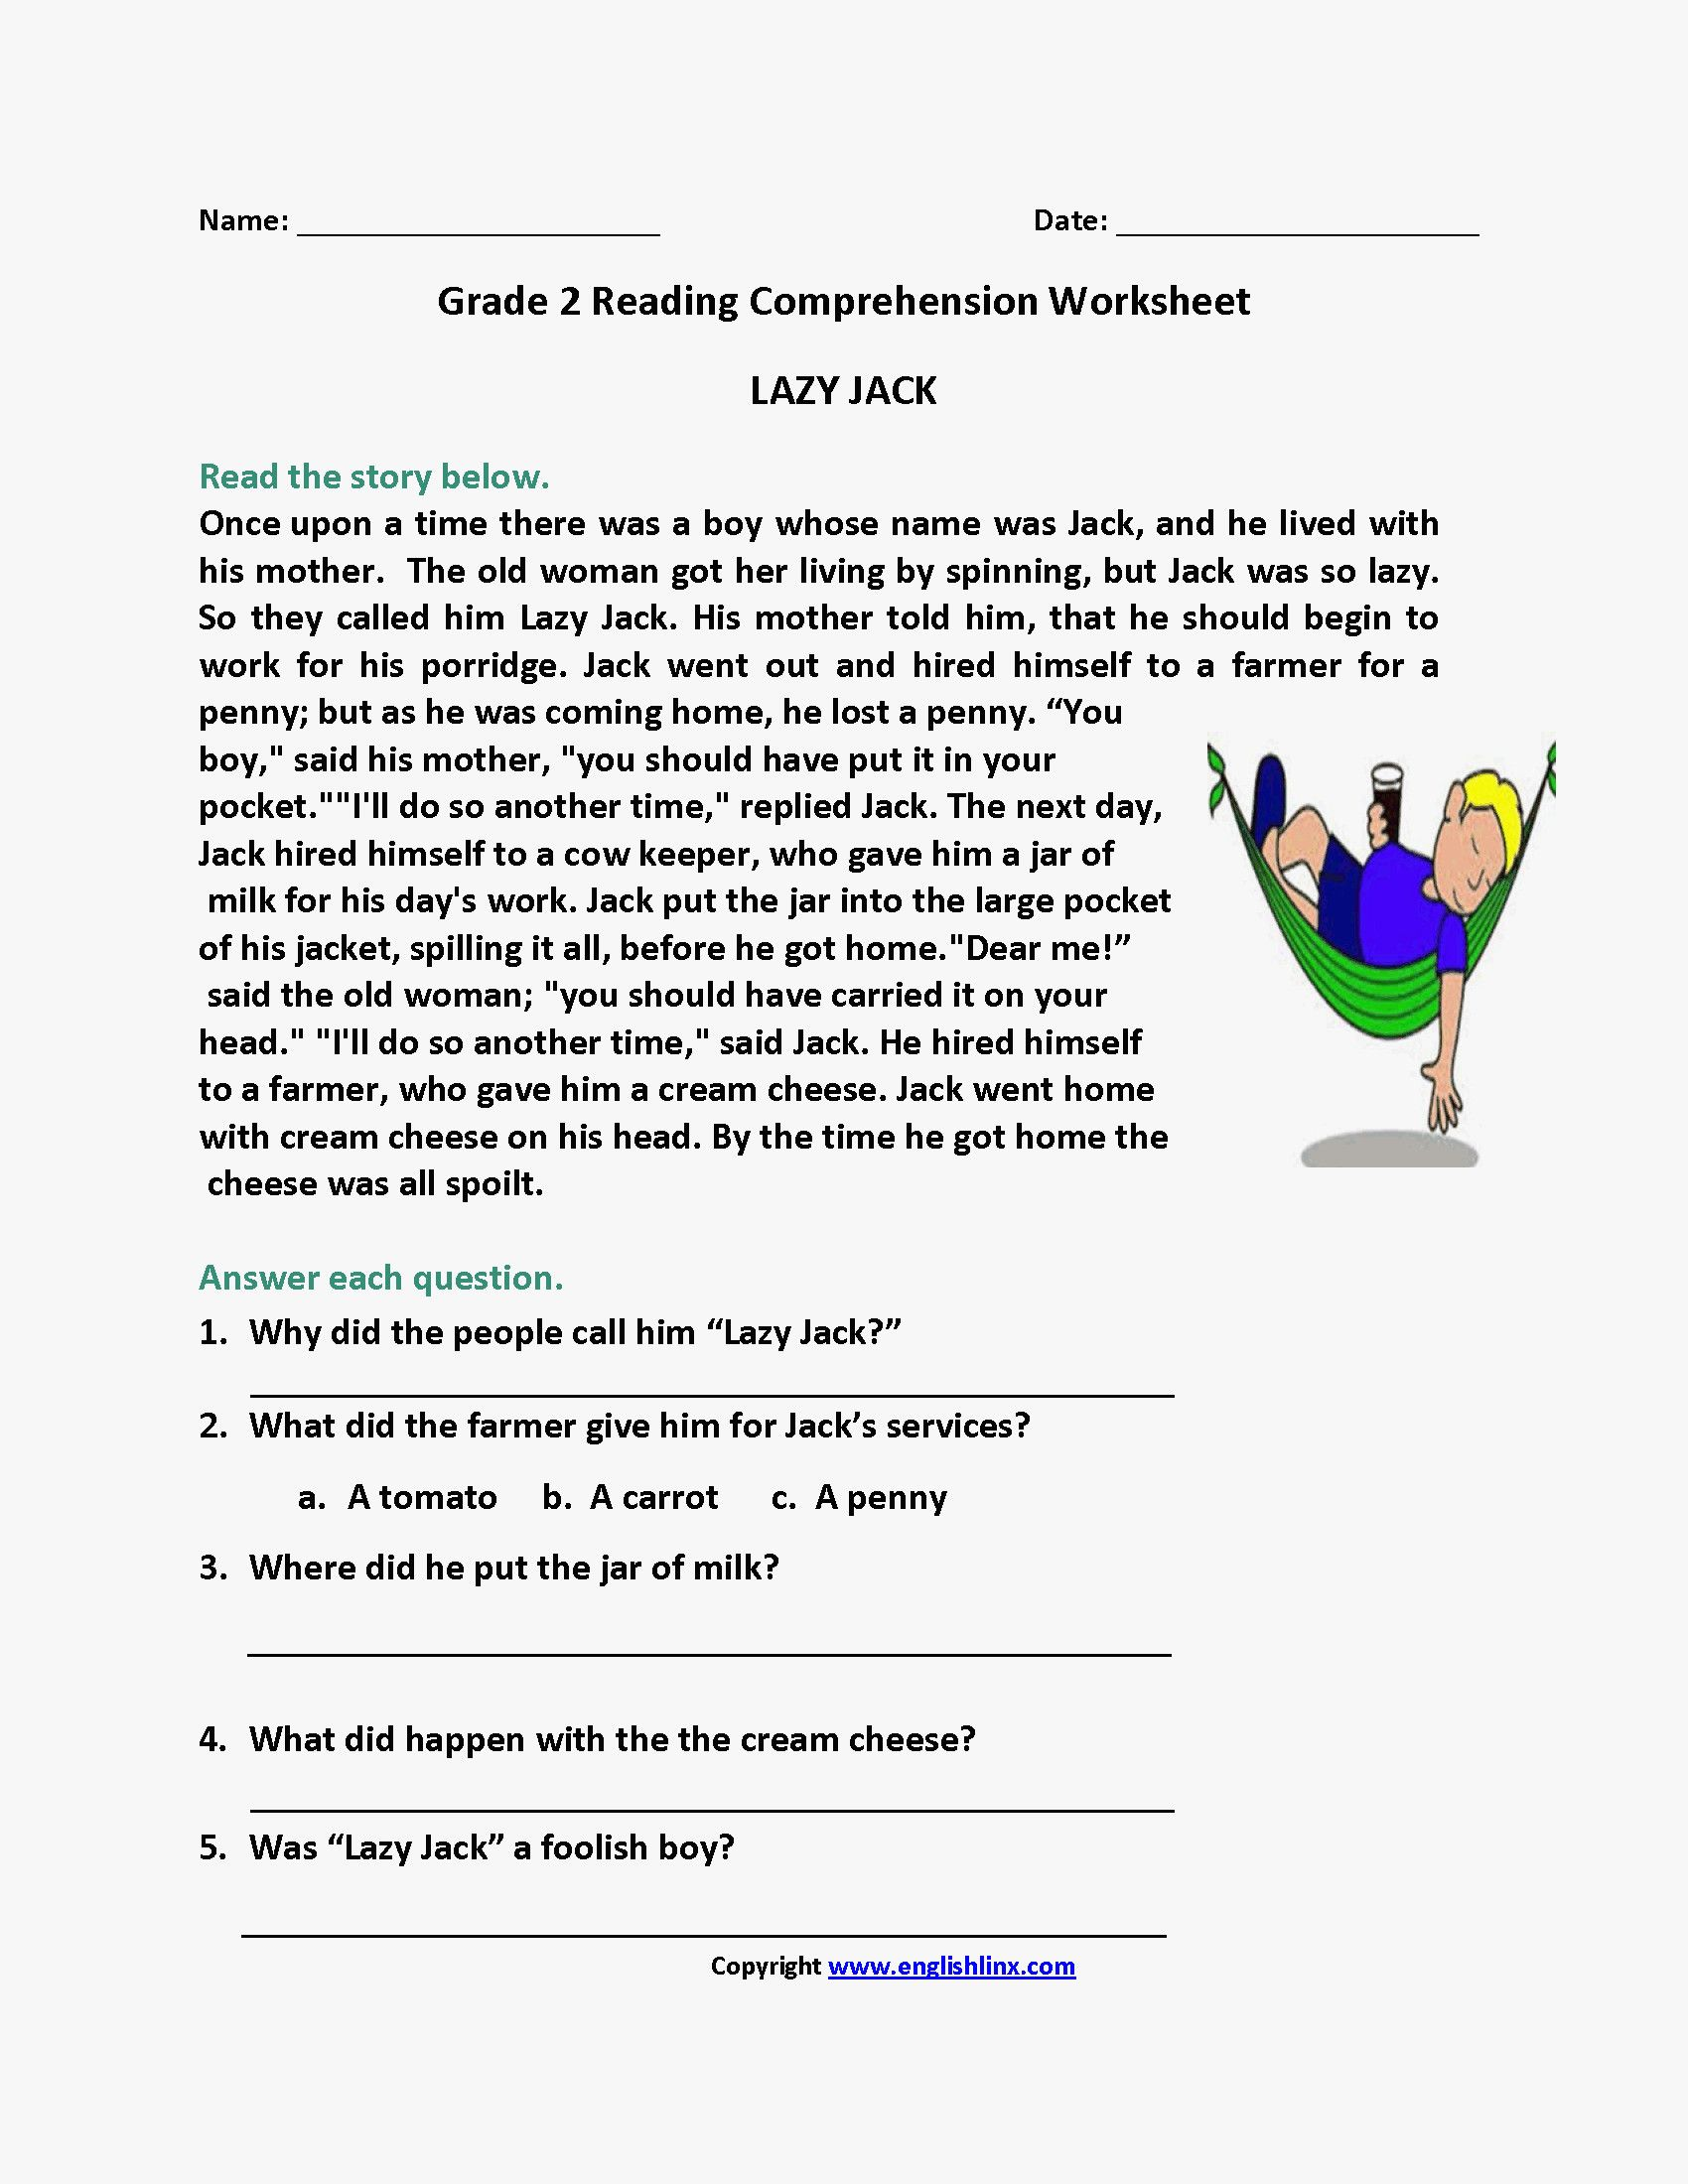 medium resolution of 10 Reading Comprehension Worksheets for 2nd Grade - Free Templates